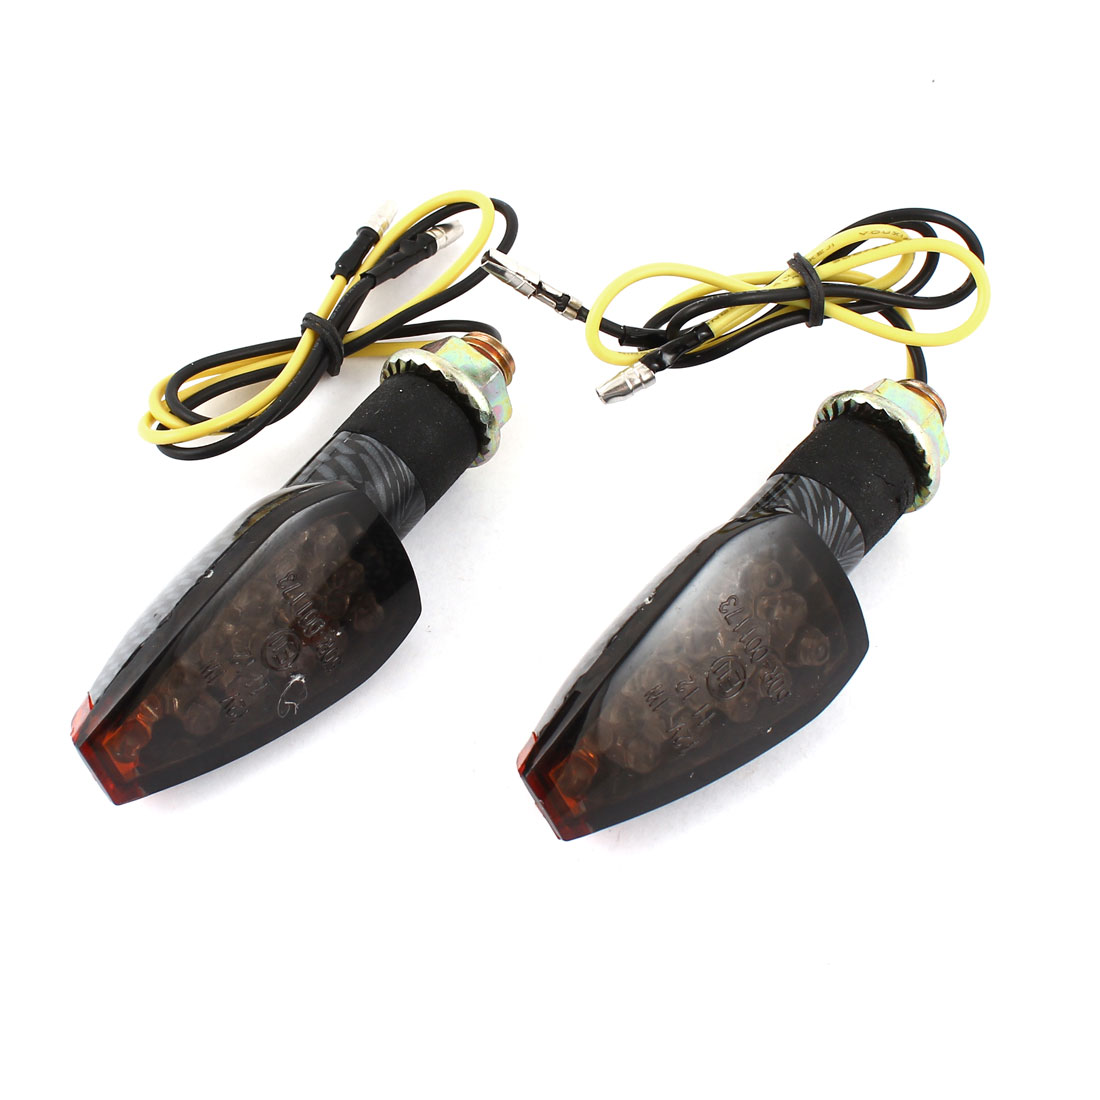 2 Pcs DC 12V Yellow 14 LED 9.35mm Bolt Dia Turn Signal Light Indicator Lamps for Motorcycle